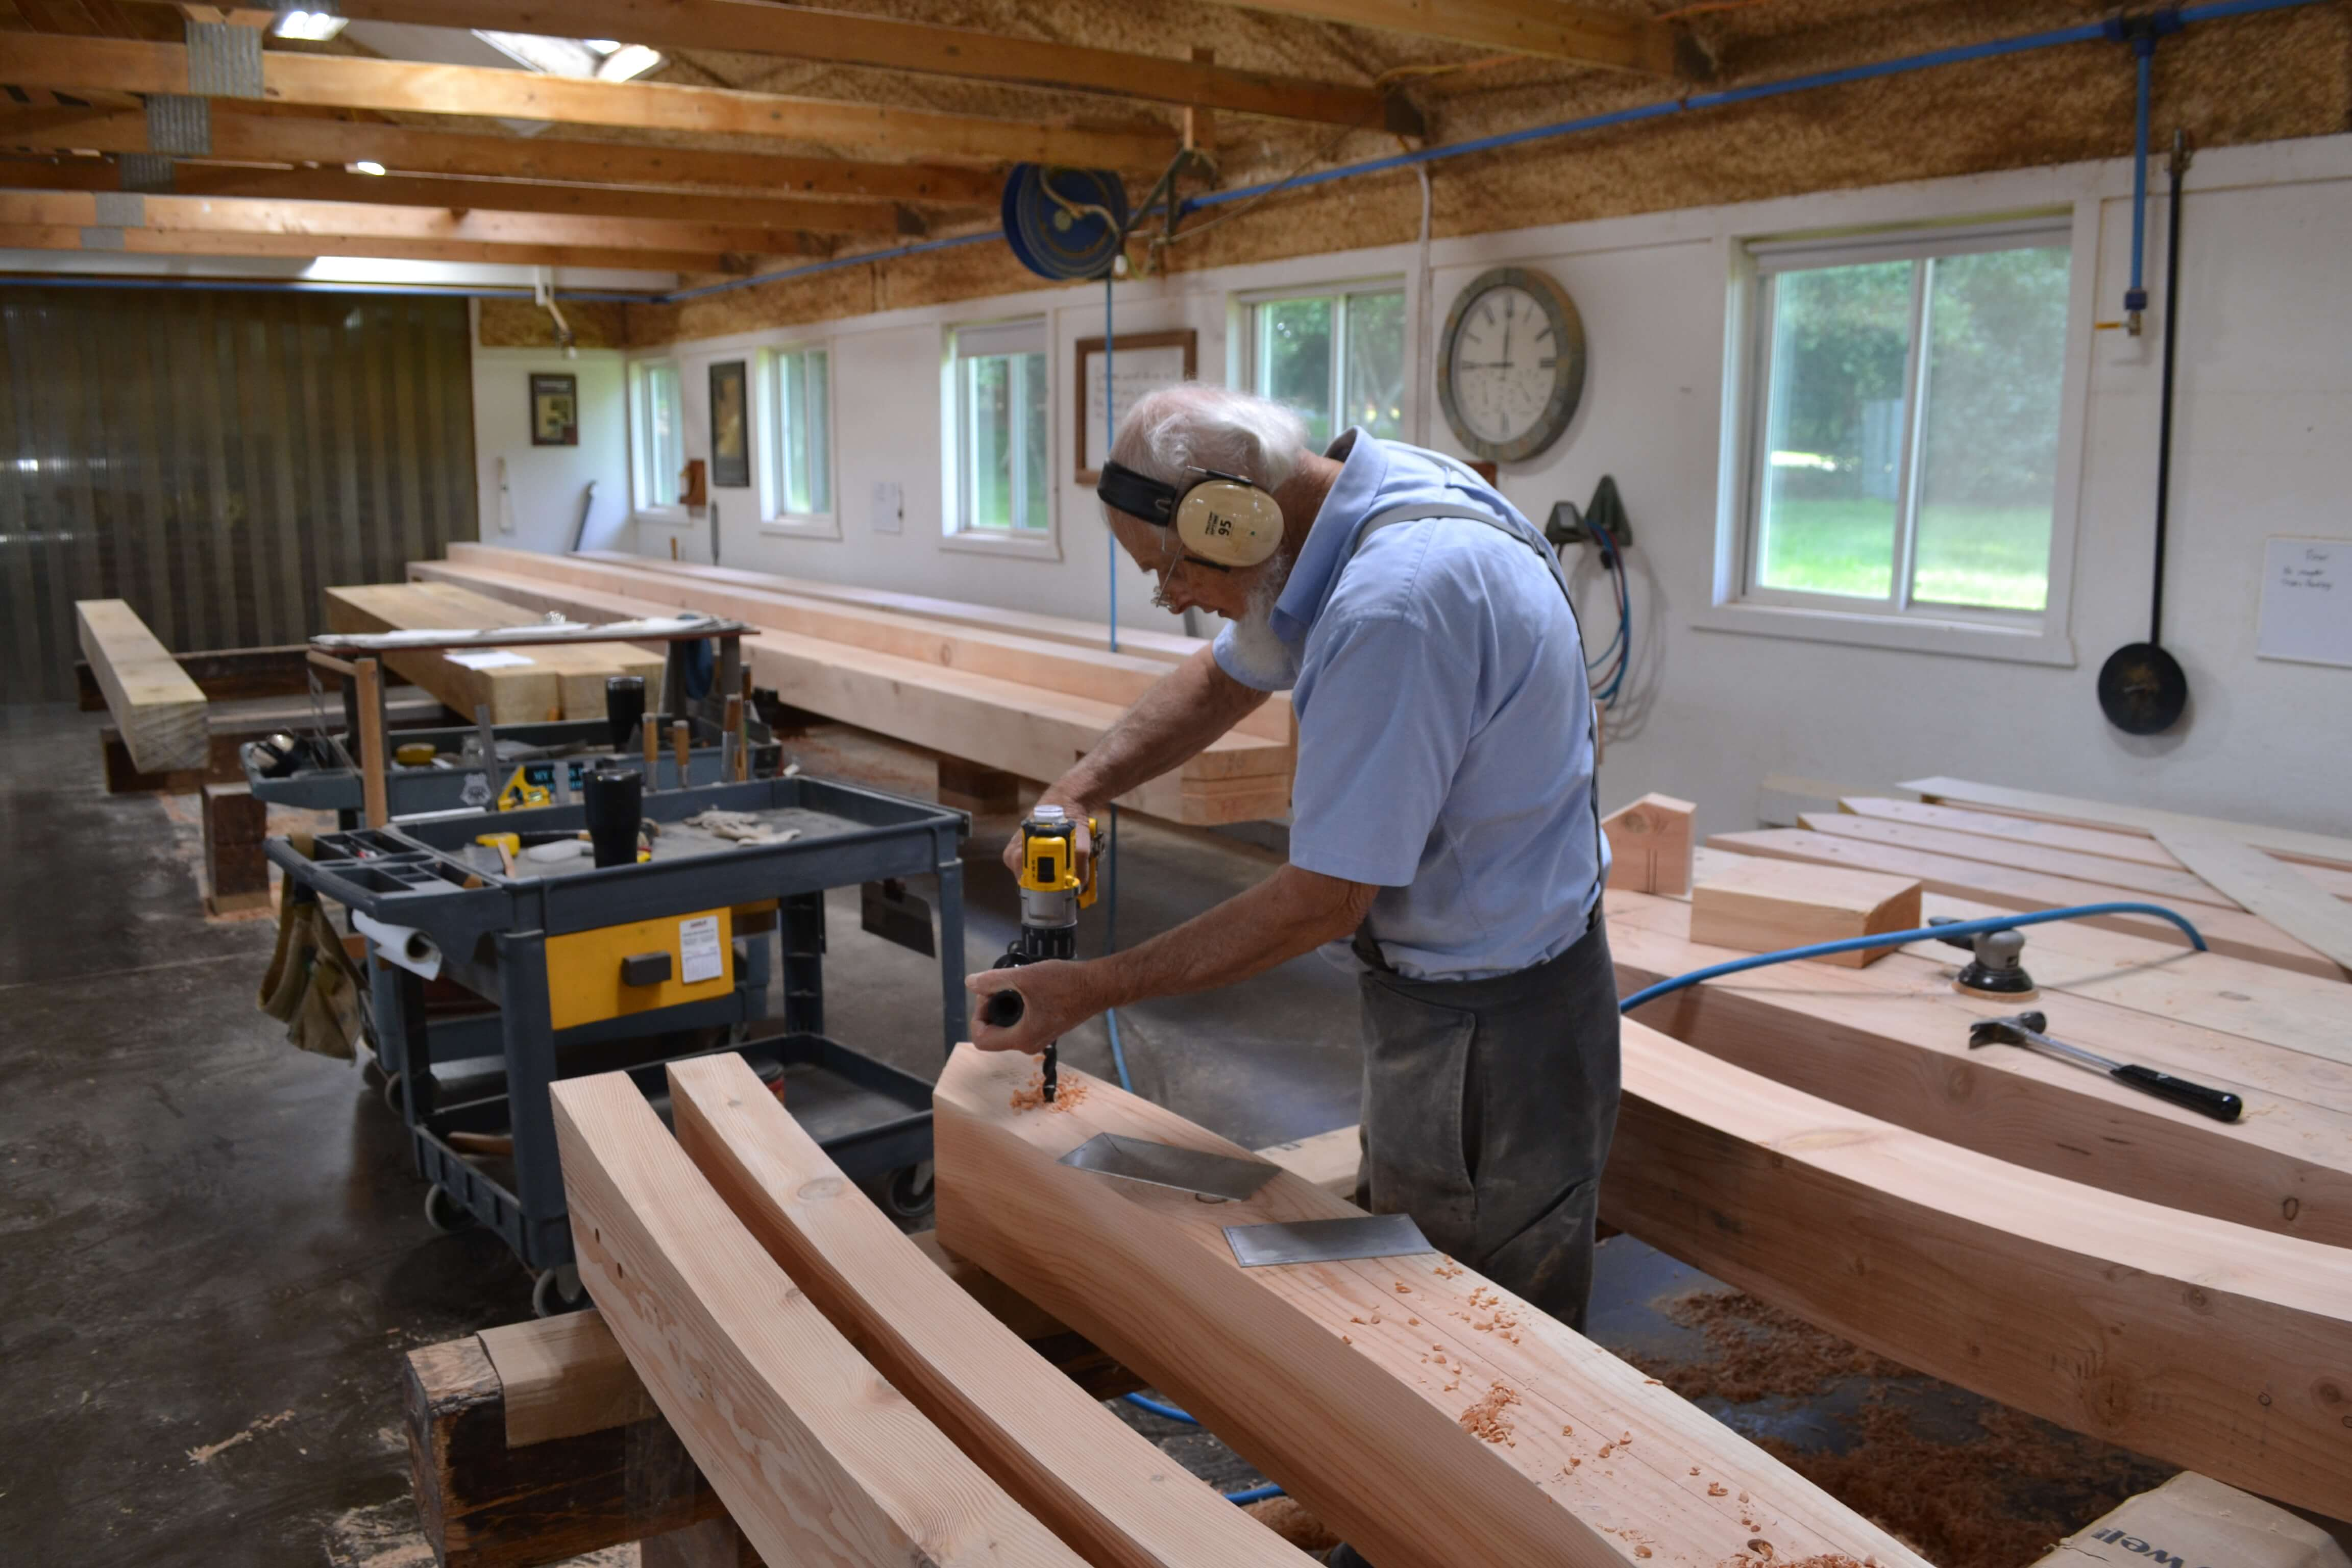 Amish craftsman build beams for the entrance to Fixari Family Dental of Lewis Center